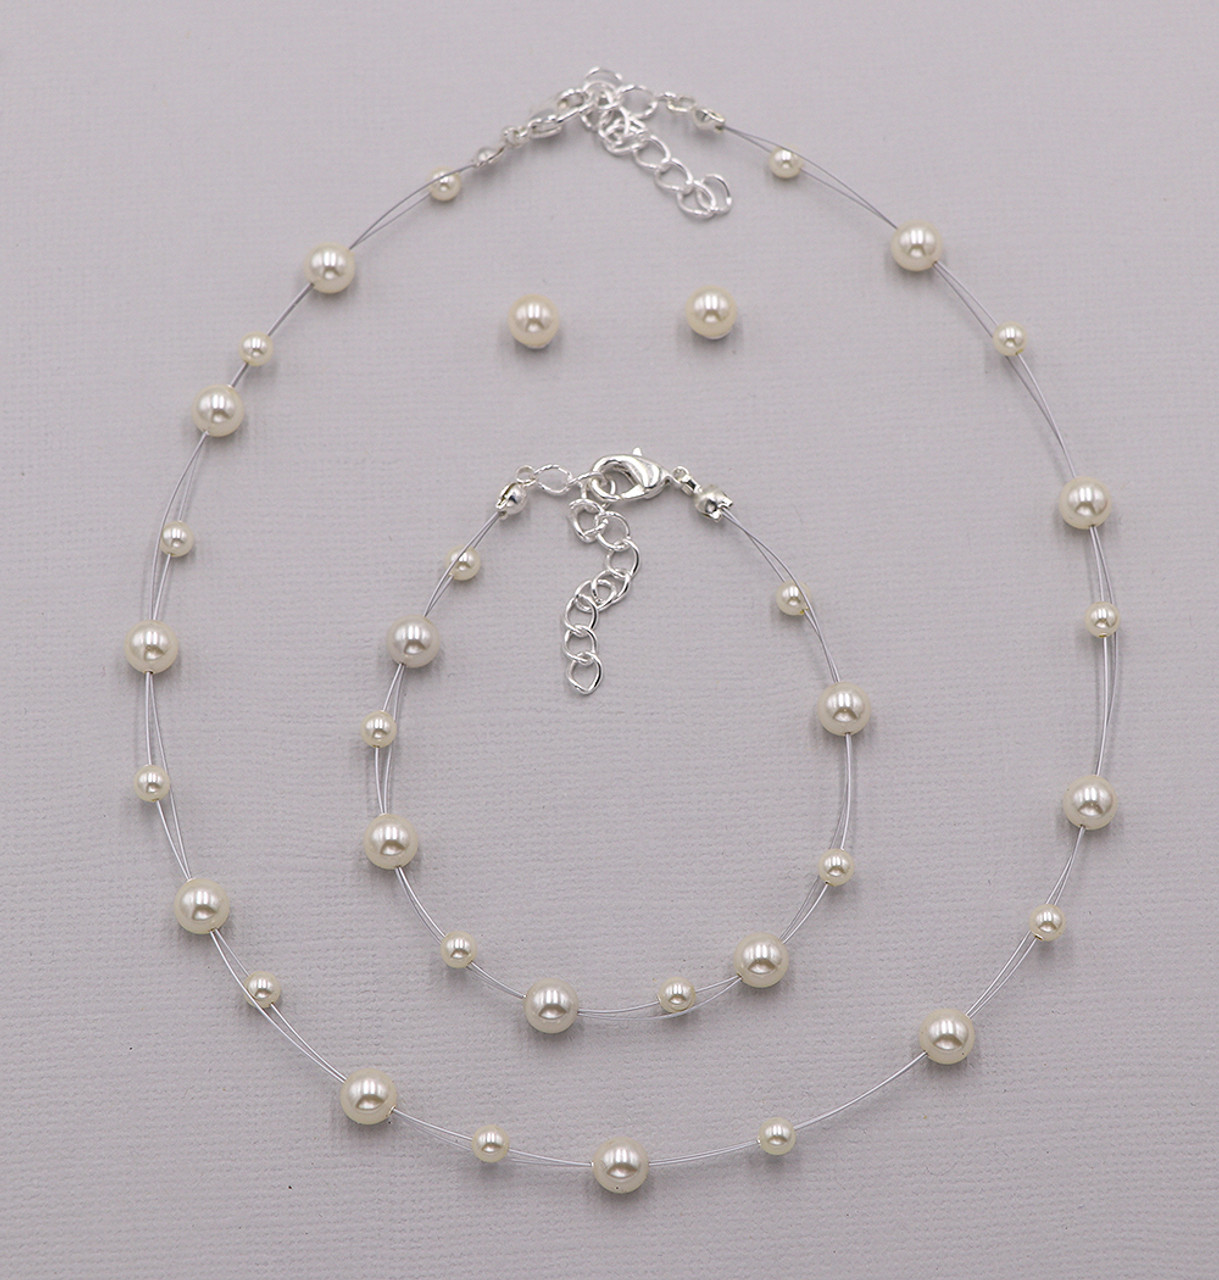 Silver tone white glass pearl necklace with earrings and bracelet communion